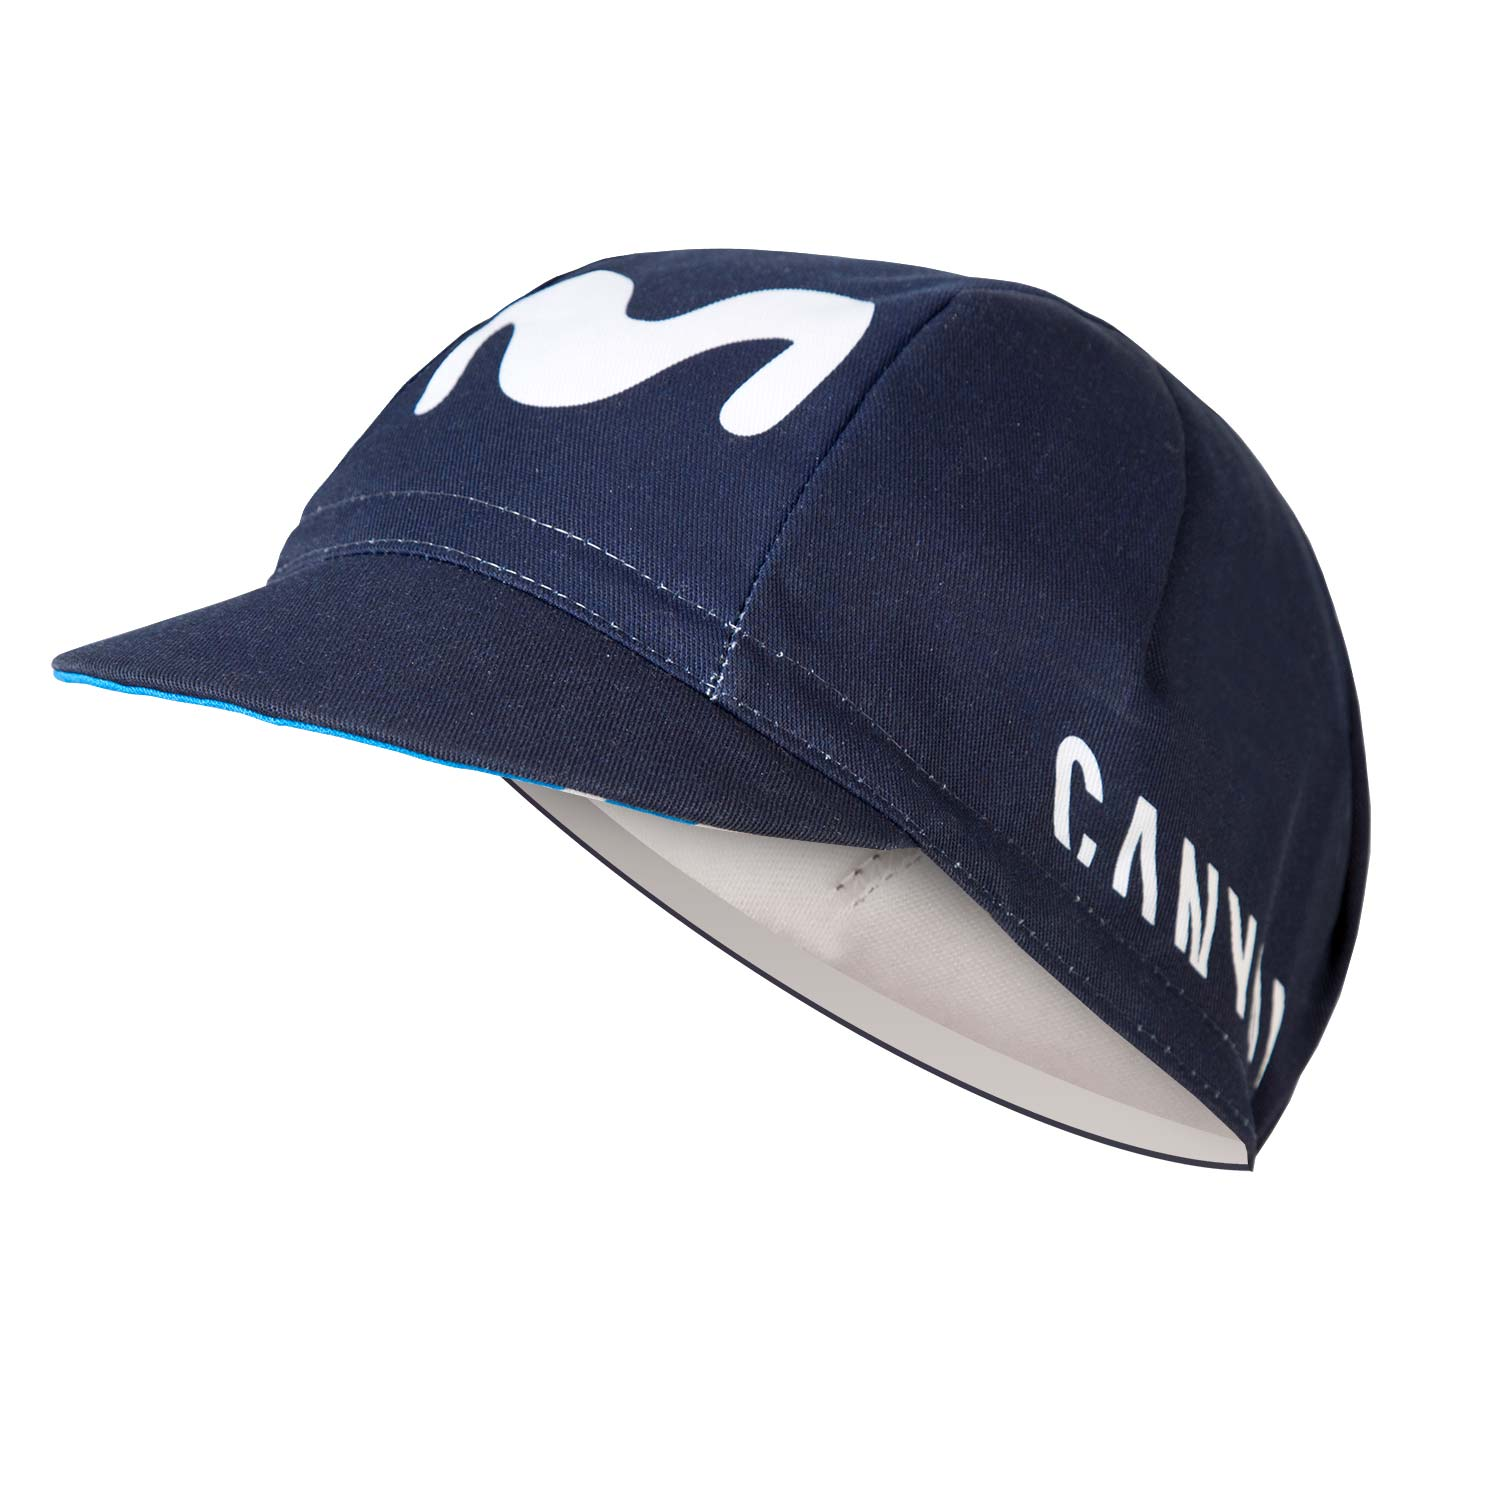 Movistar Team Race Cap 2019 Movistar Team